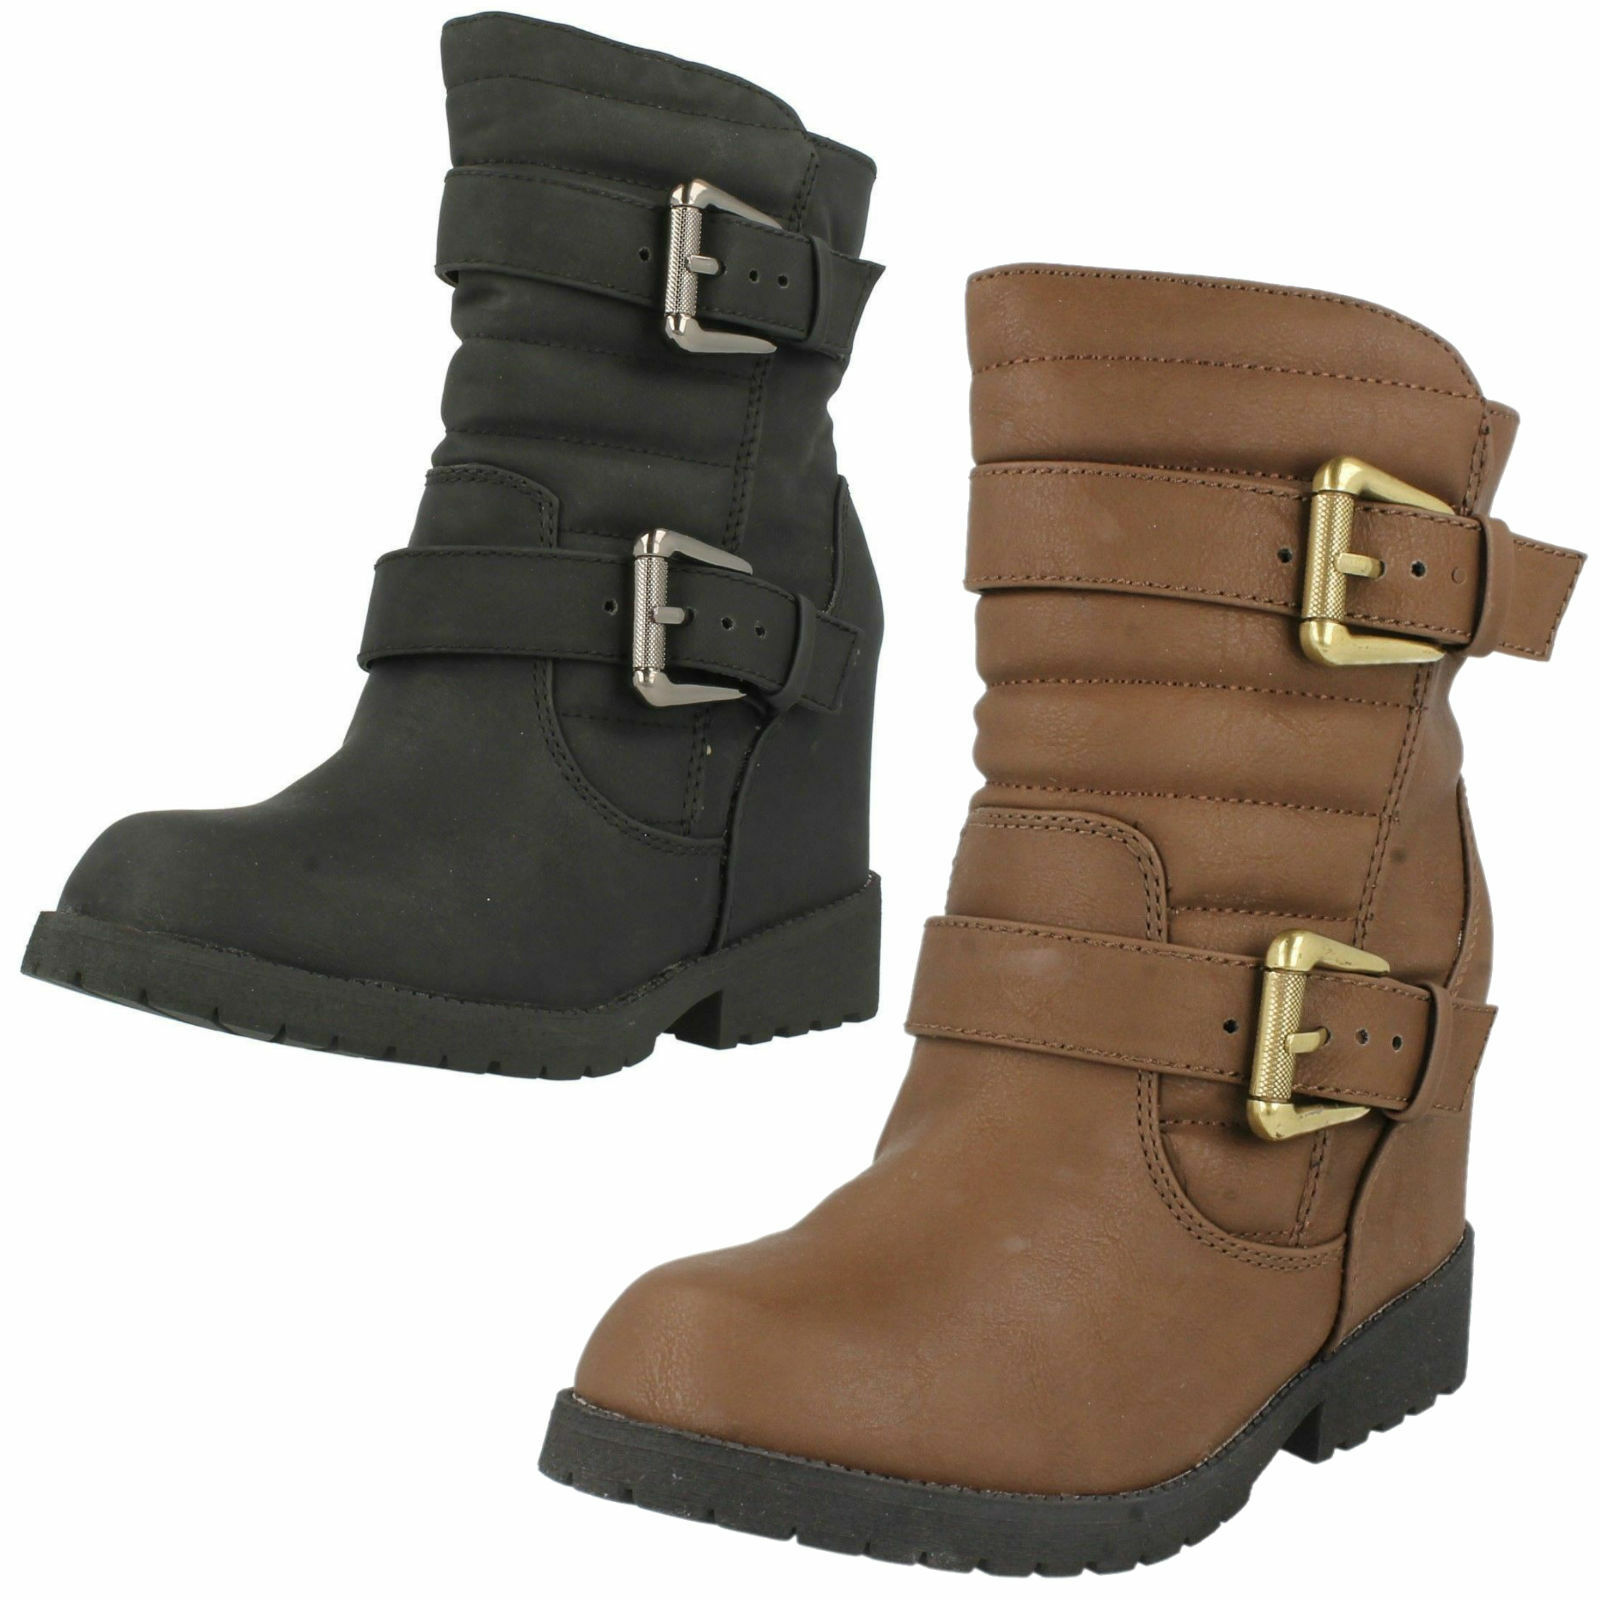 *SALE* LADIES SPOT ON BROWN & BLACK HIDDEN WEDGE BOOTS WITH BUCKLE DETAIL F50333